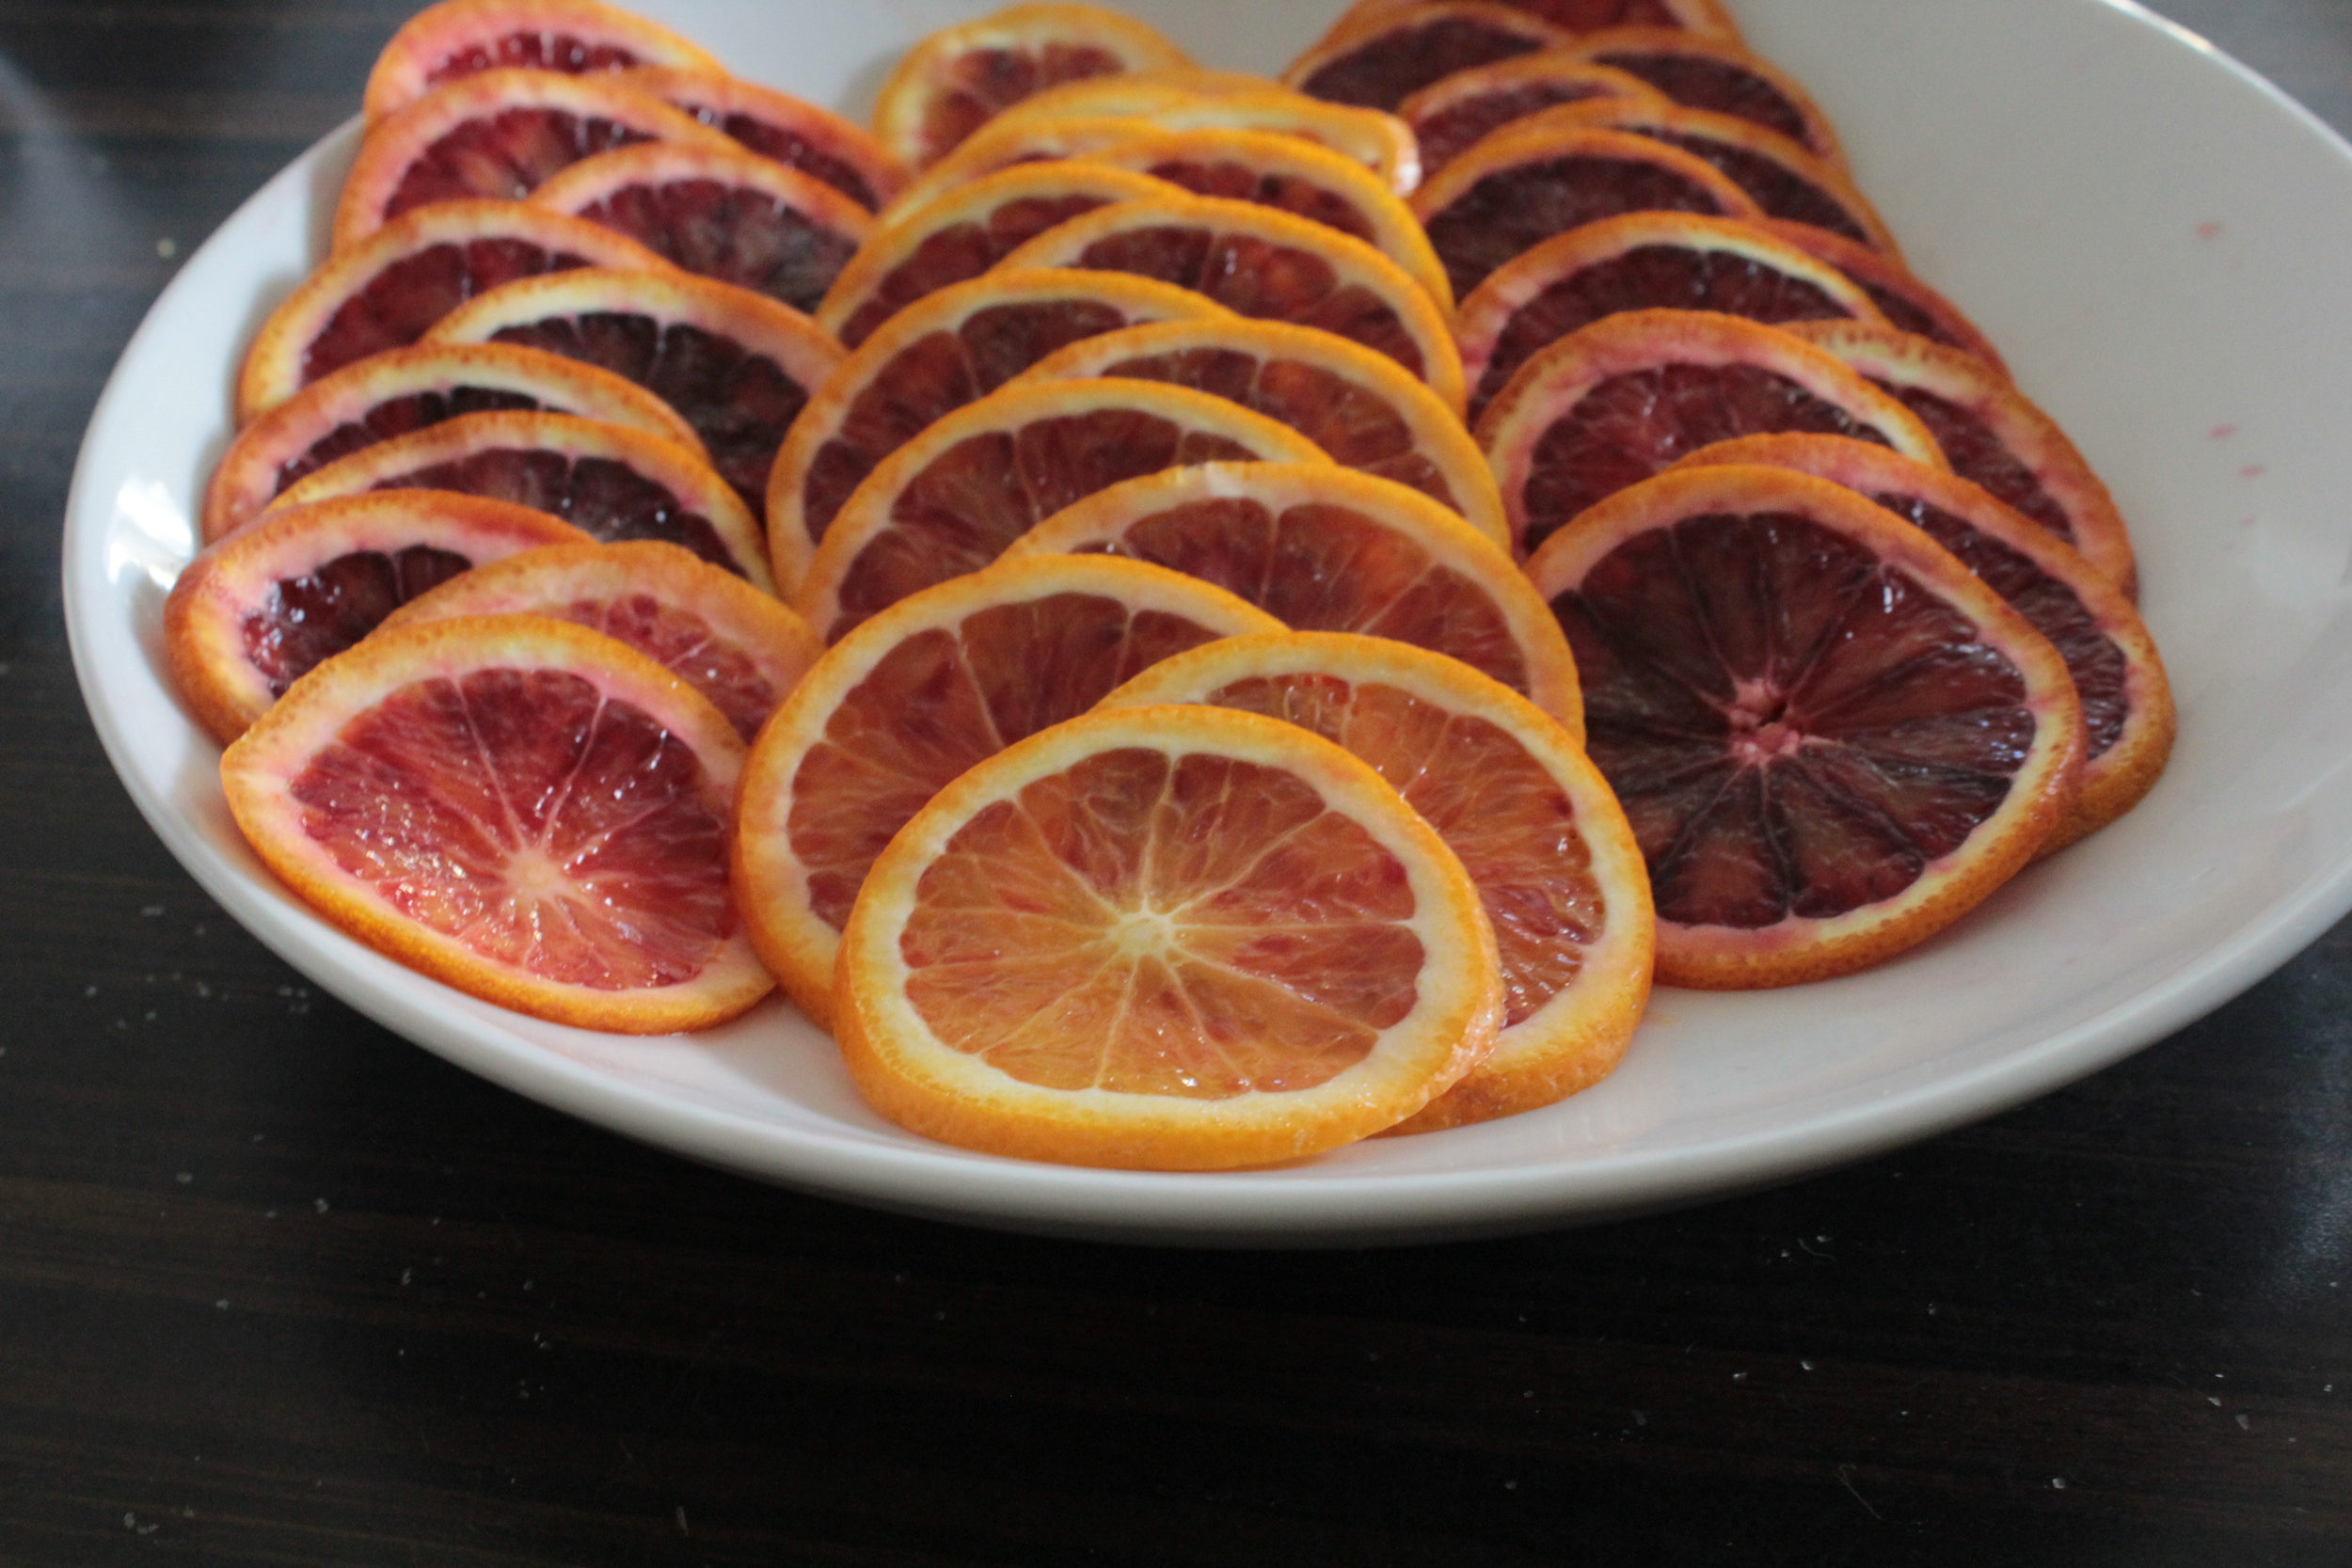 THINLY SLICED BLOOD ORANGES